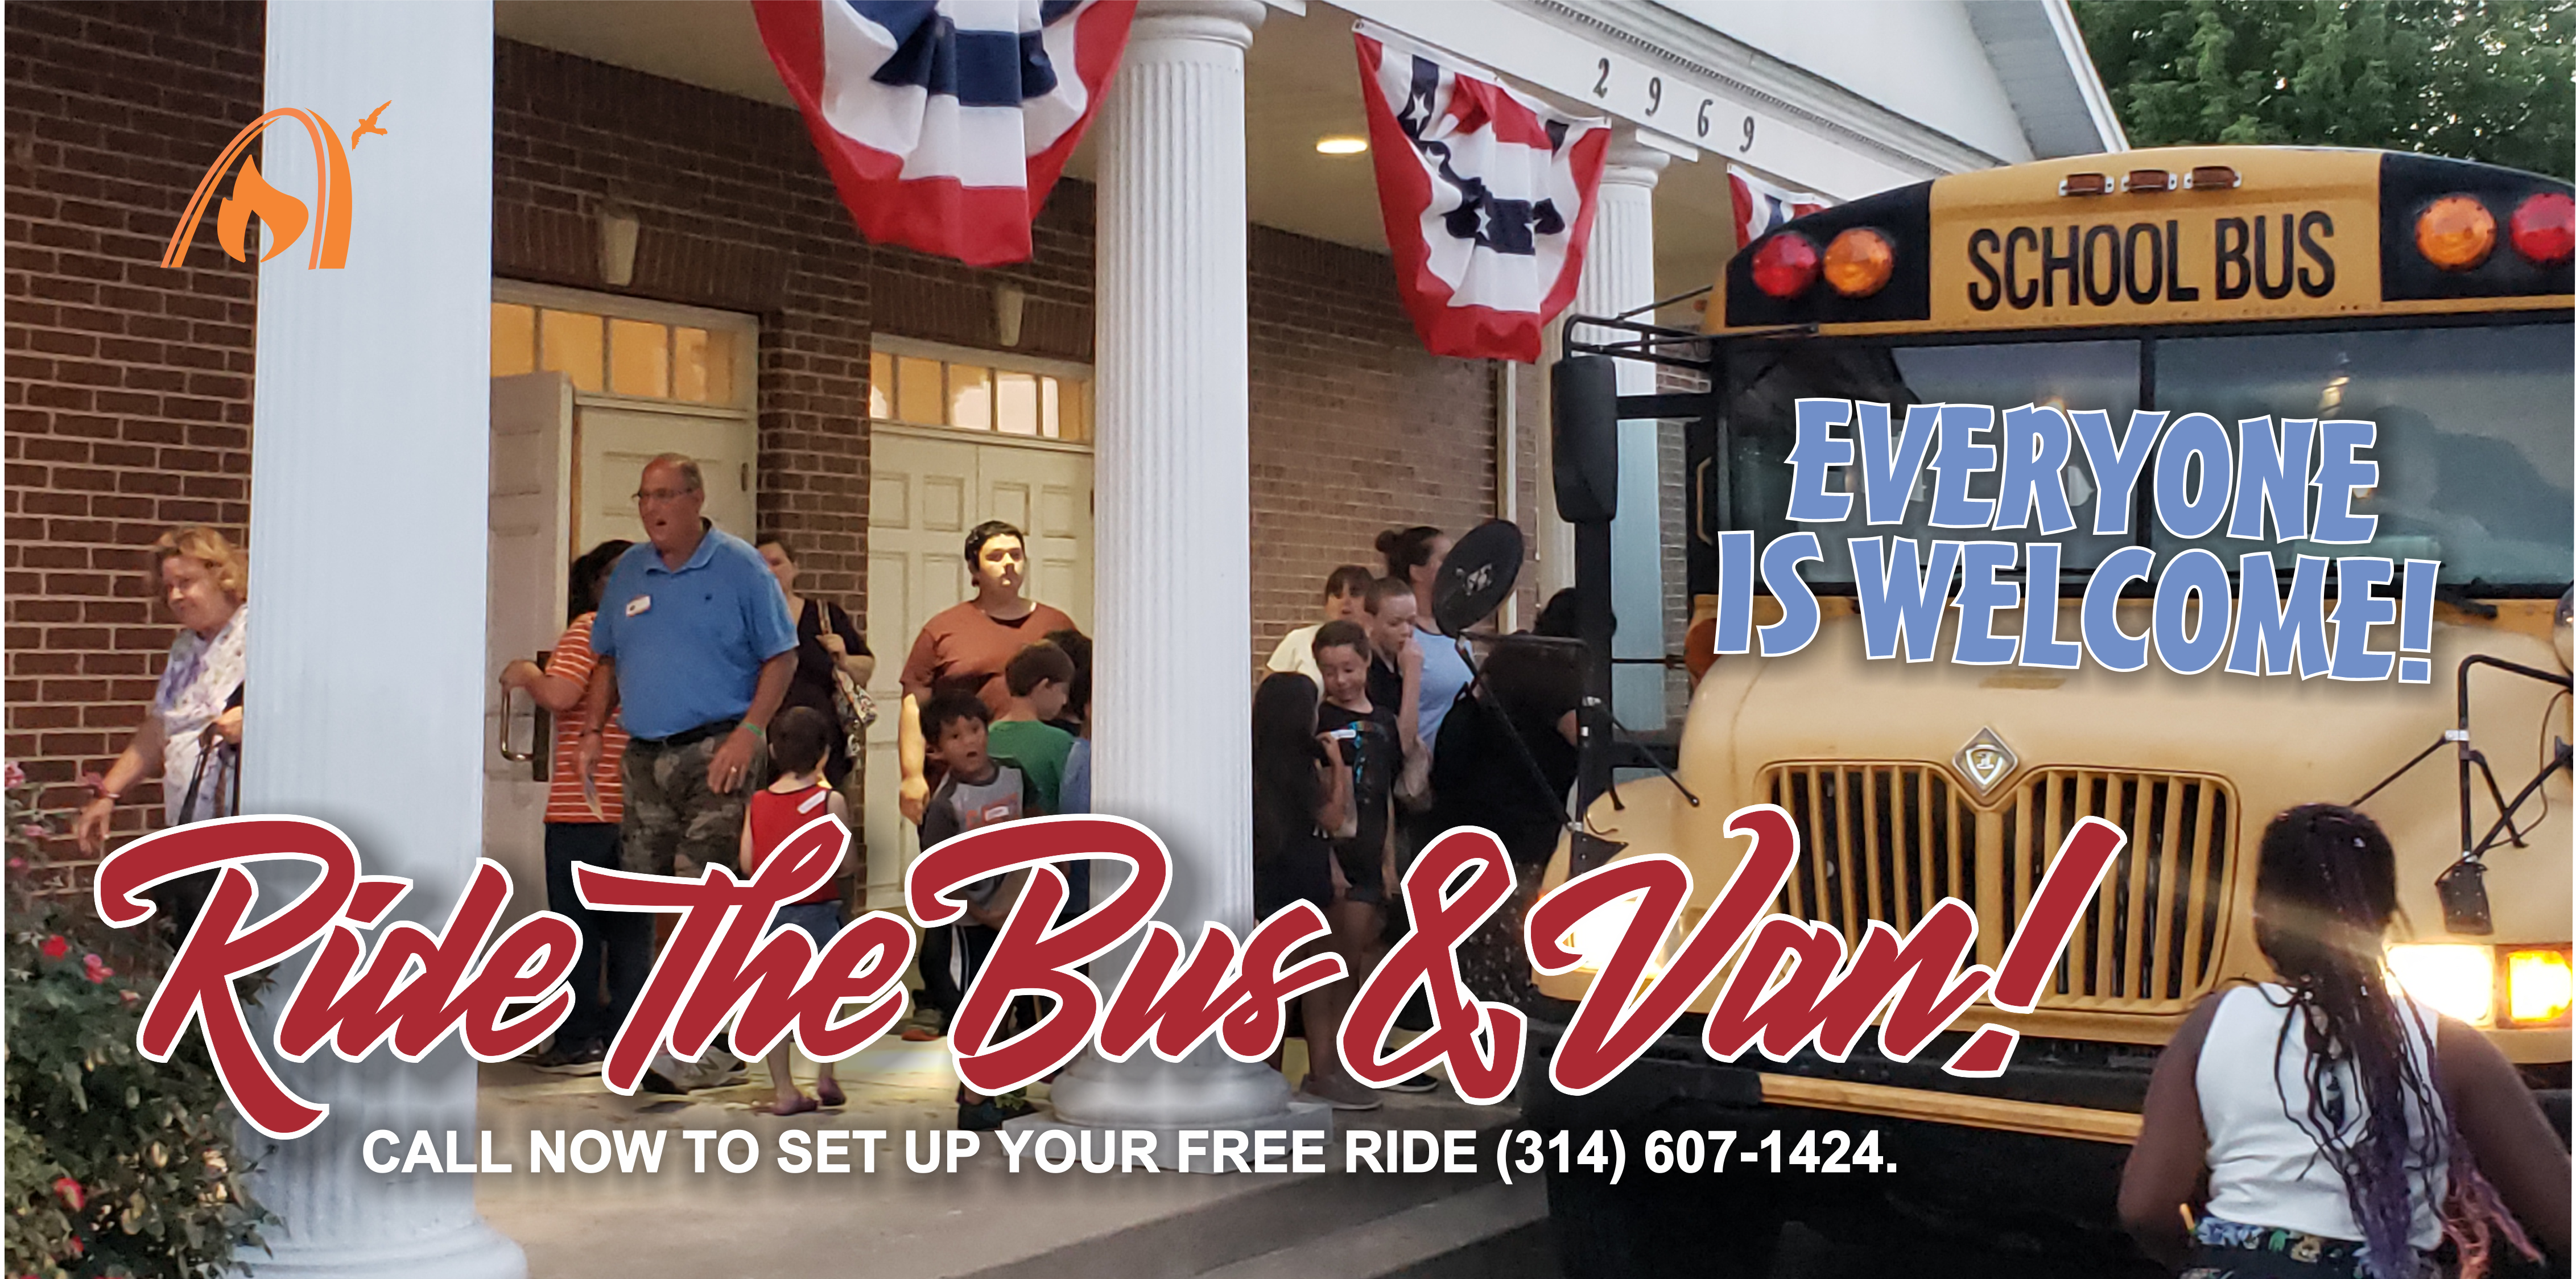 BUS MINISTRYWelcome to Faith Community